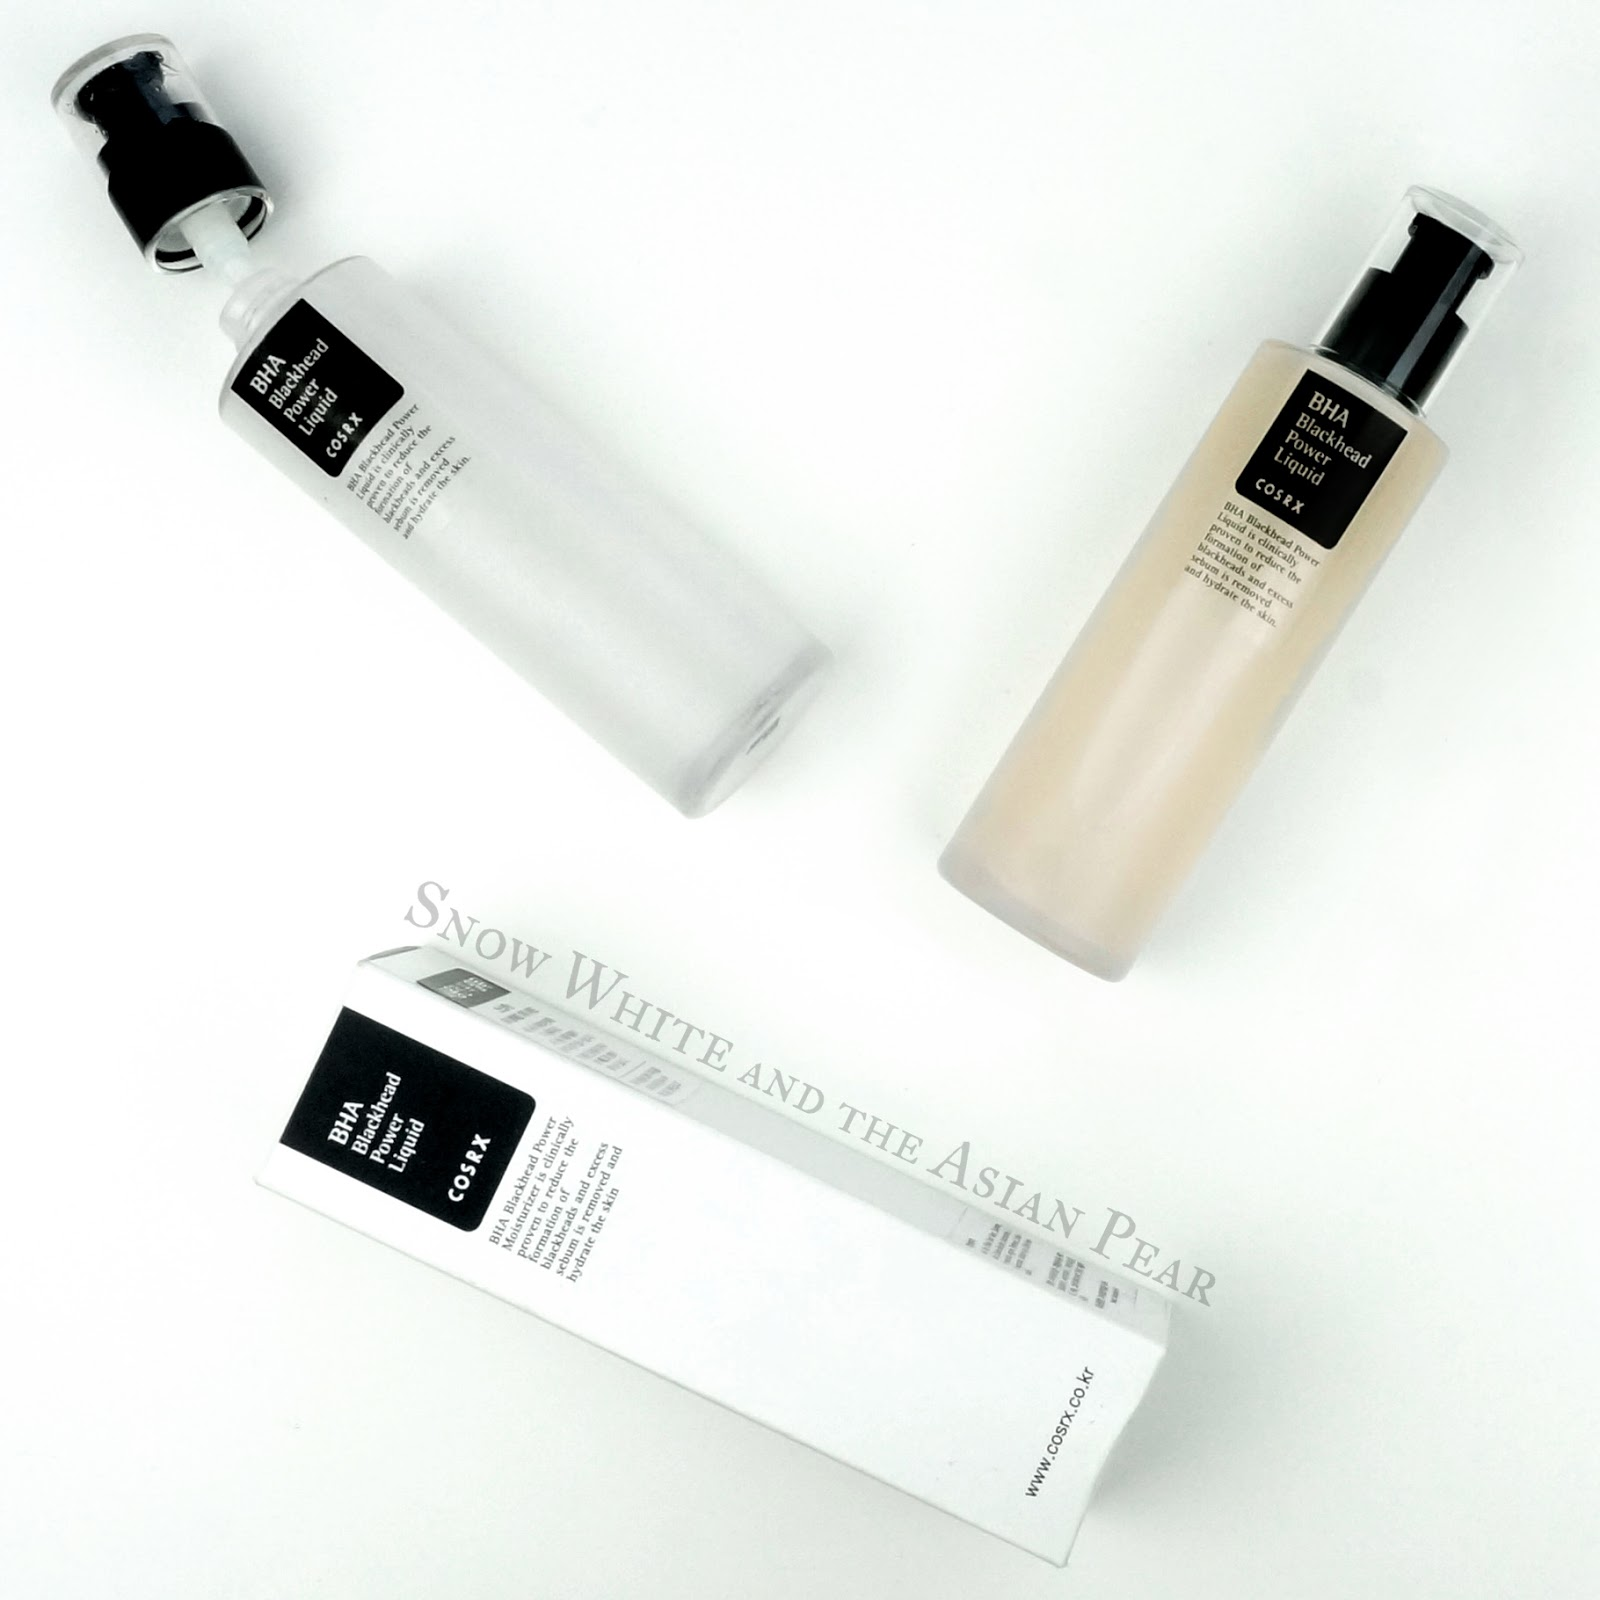 Cosrx BHA Power Liquid Exfoliant Review & My Descent Into